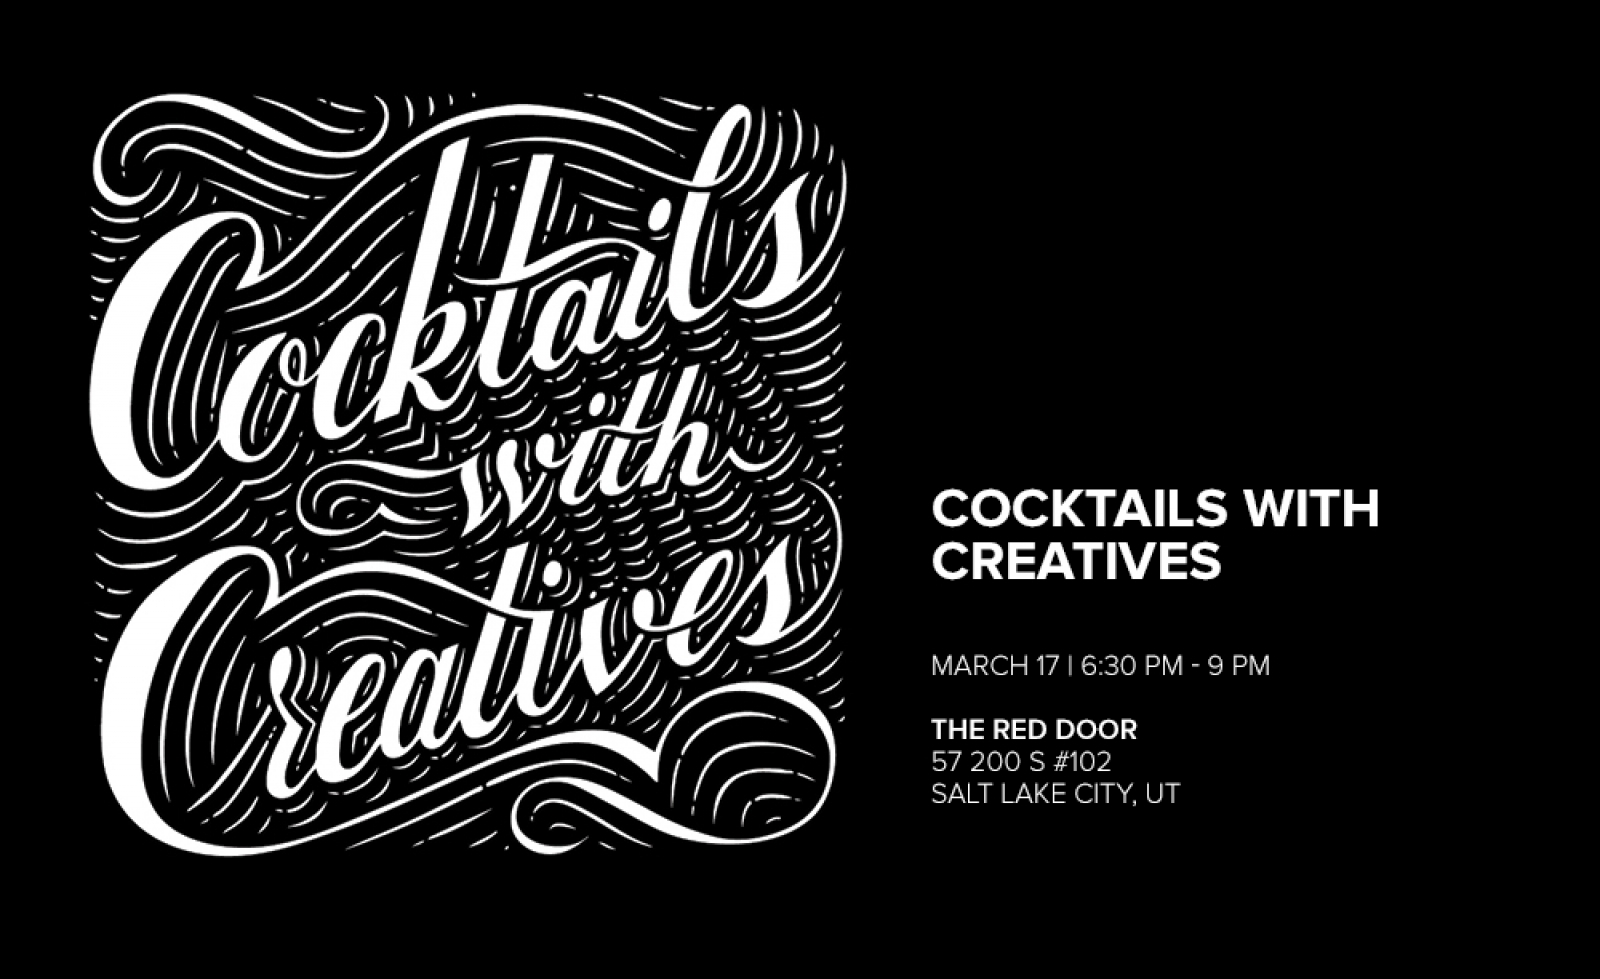 Cocktails With Creatives At The Red Door